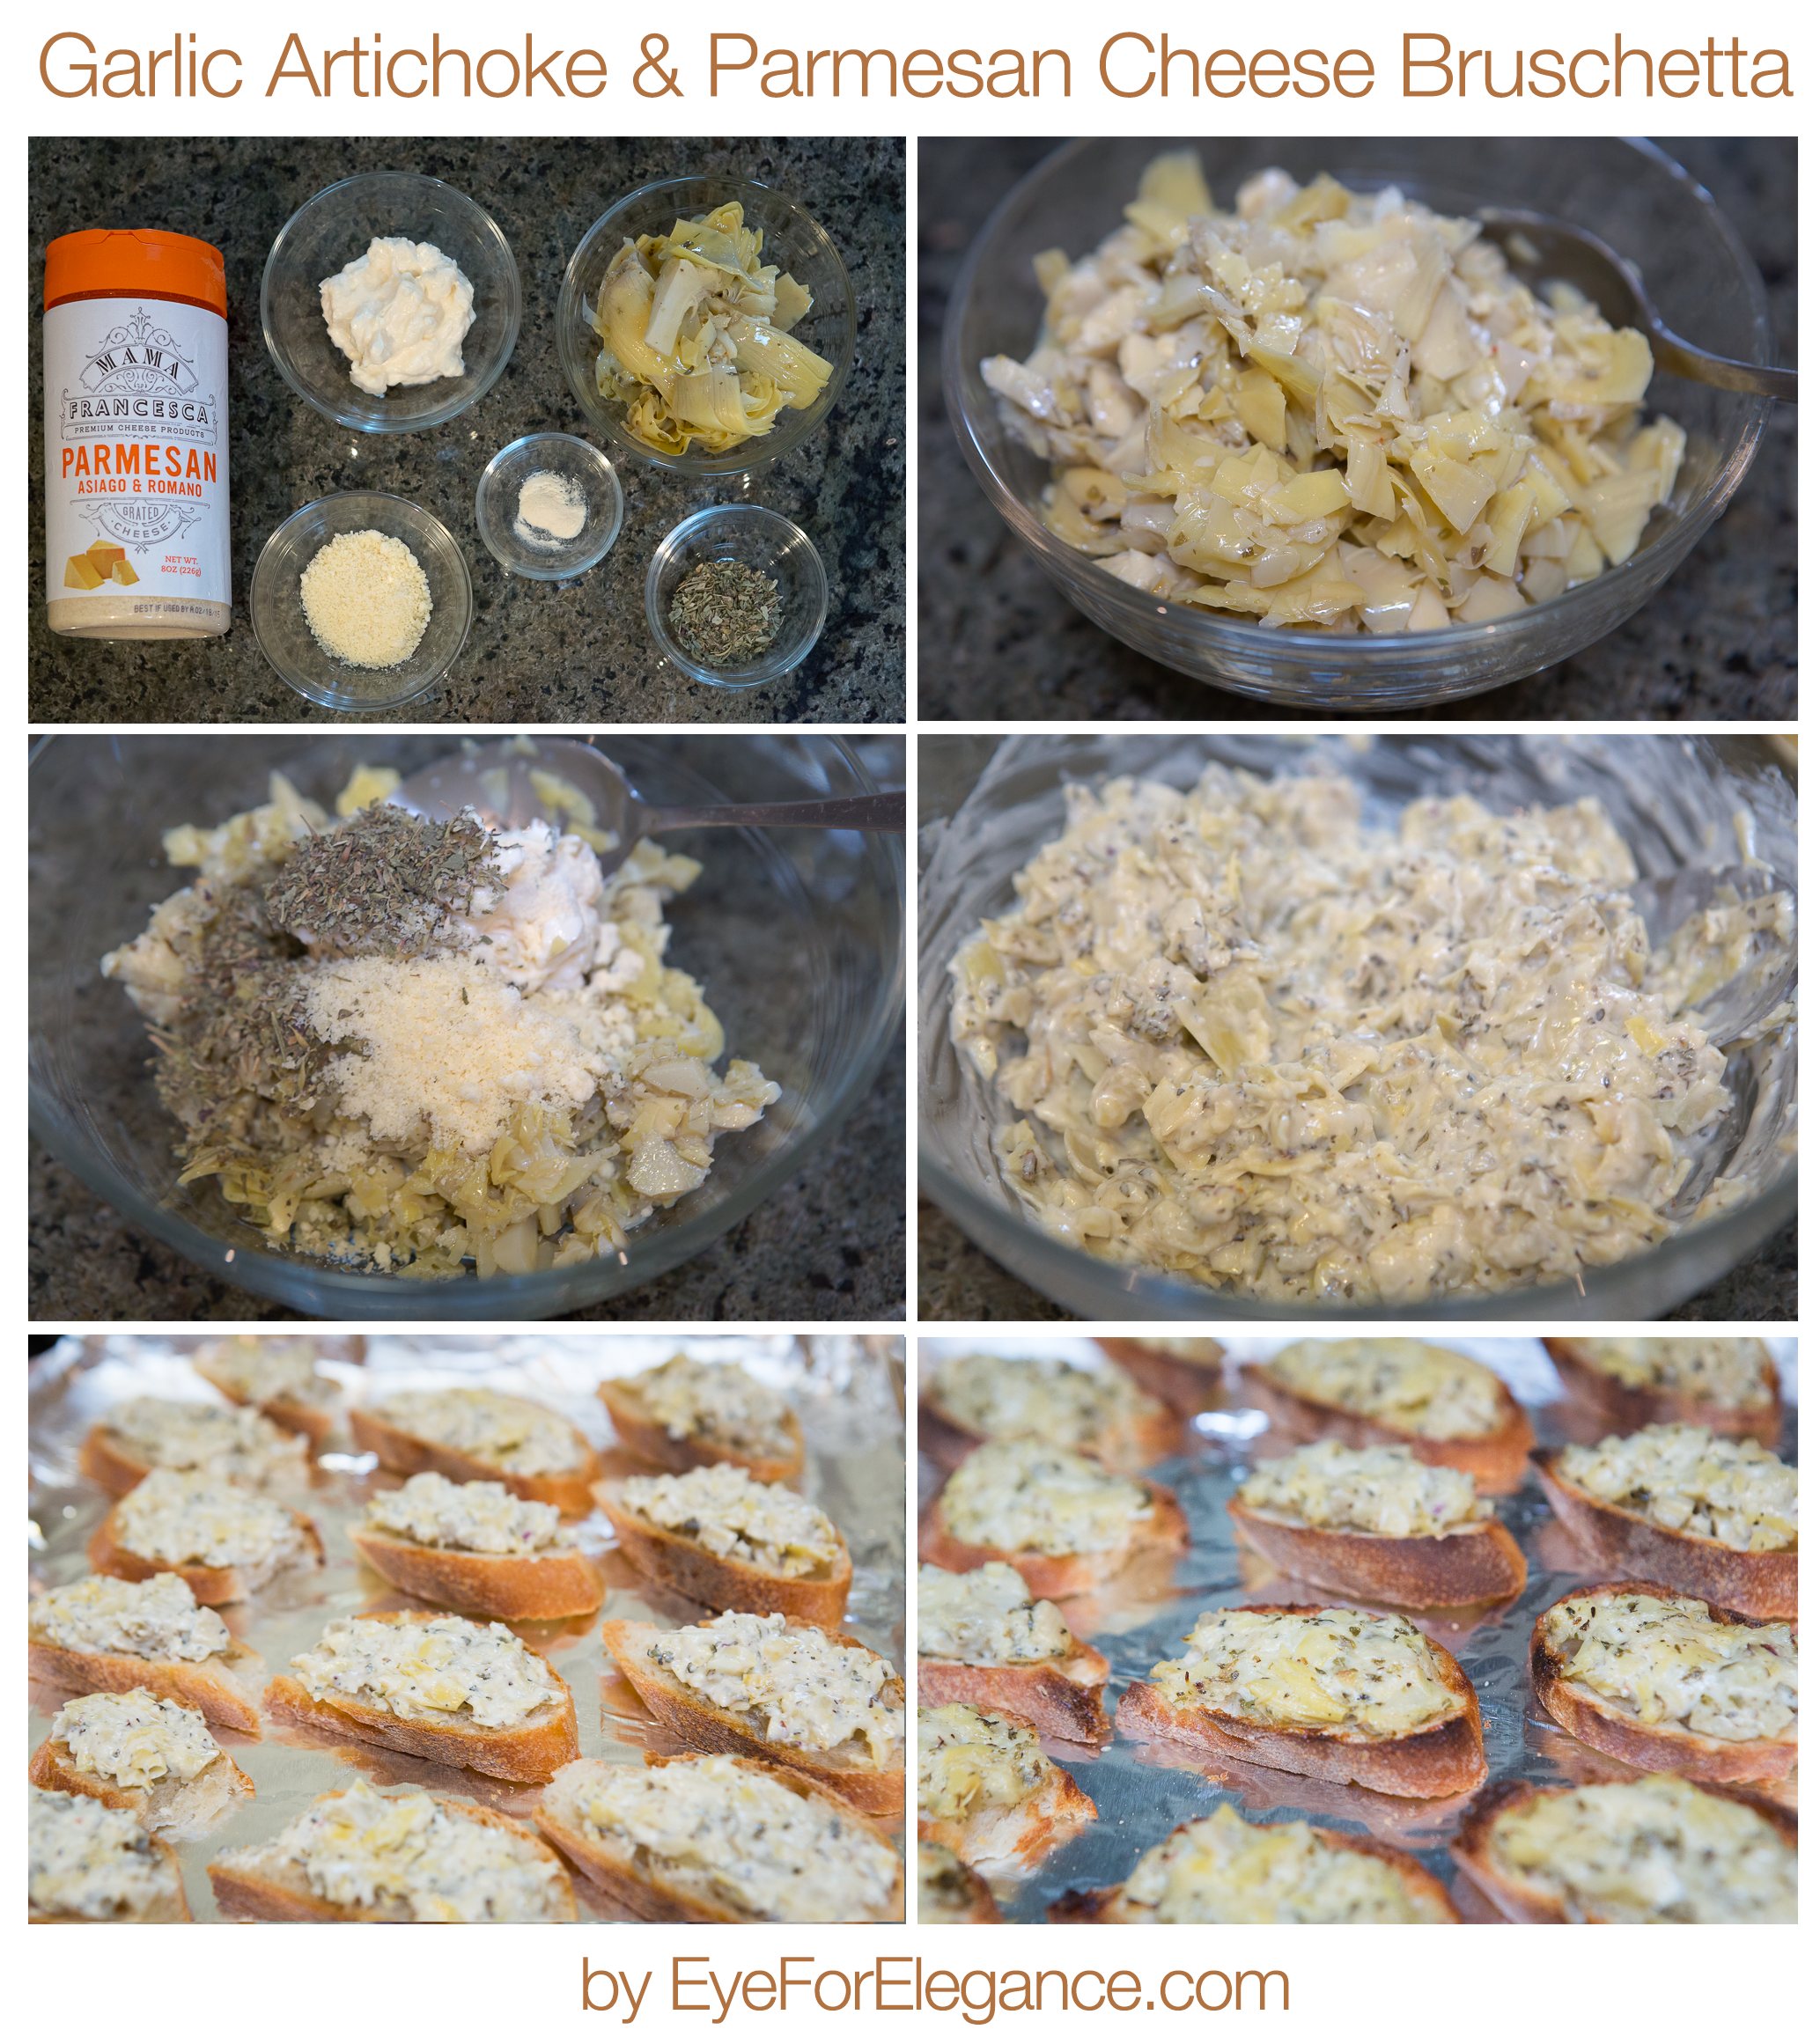 ParmesanCheeseArtichokeBruschetta-collage